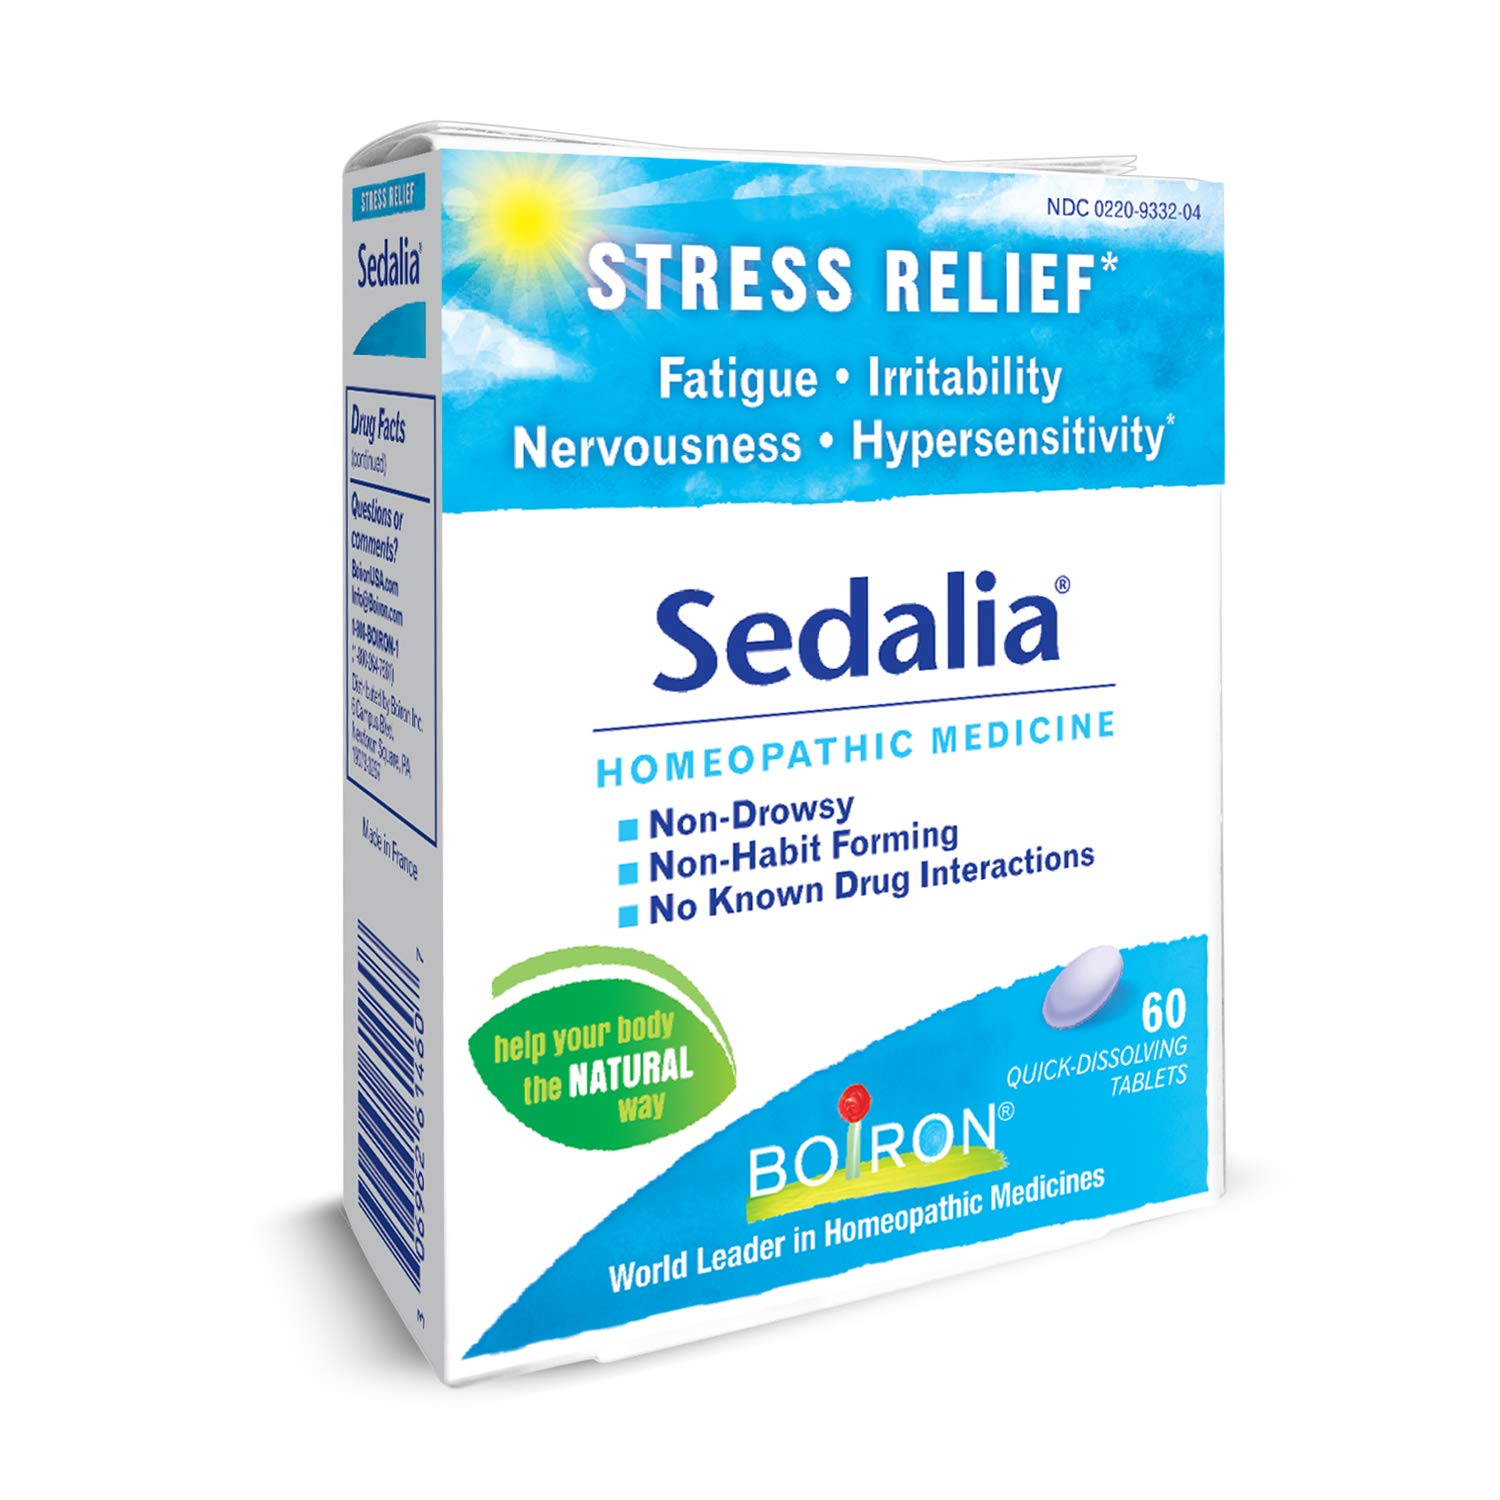 More Than 120 Homeopaths Trying To Cure >> Amazon Com Boiron Sedalia 60 Tablets Homeopathic Medicine For